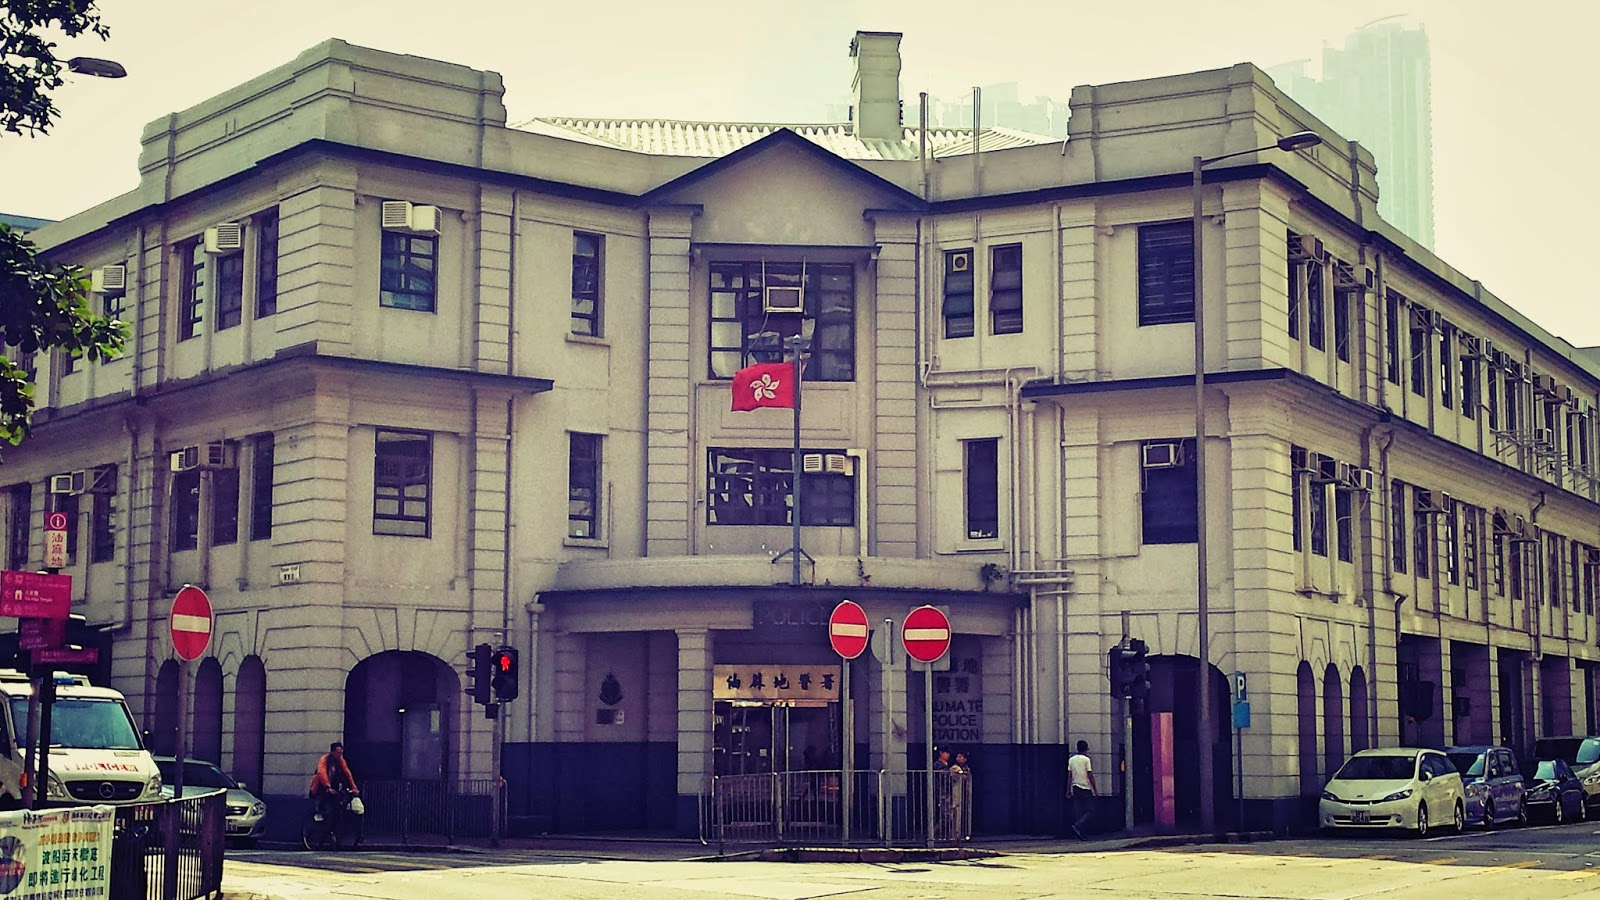 The Other Side of Hong Kong: Yau Ma Tei - Part 2 - The east meets west within steps...